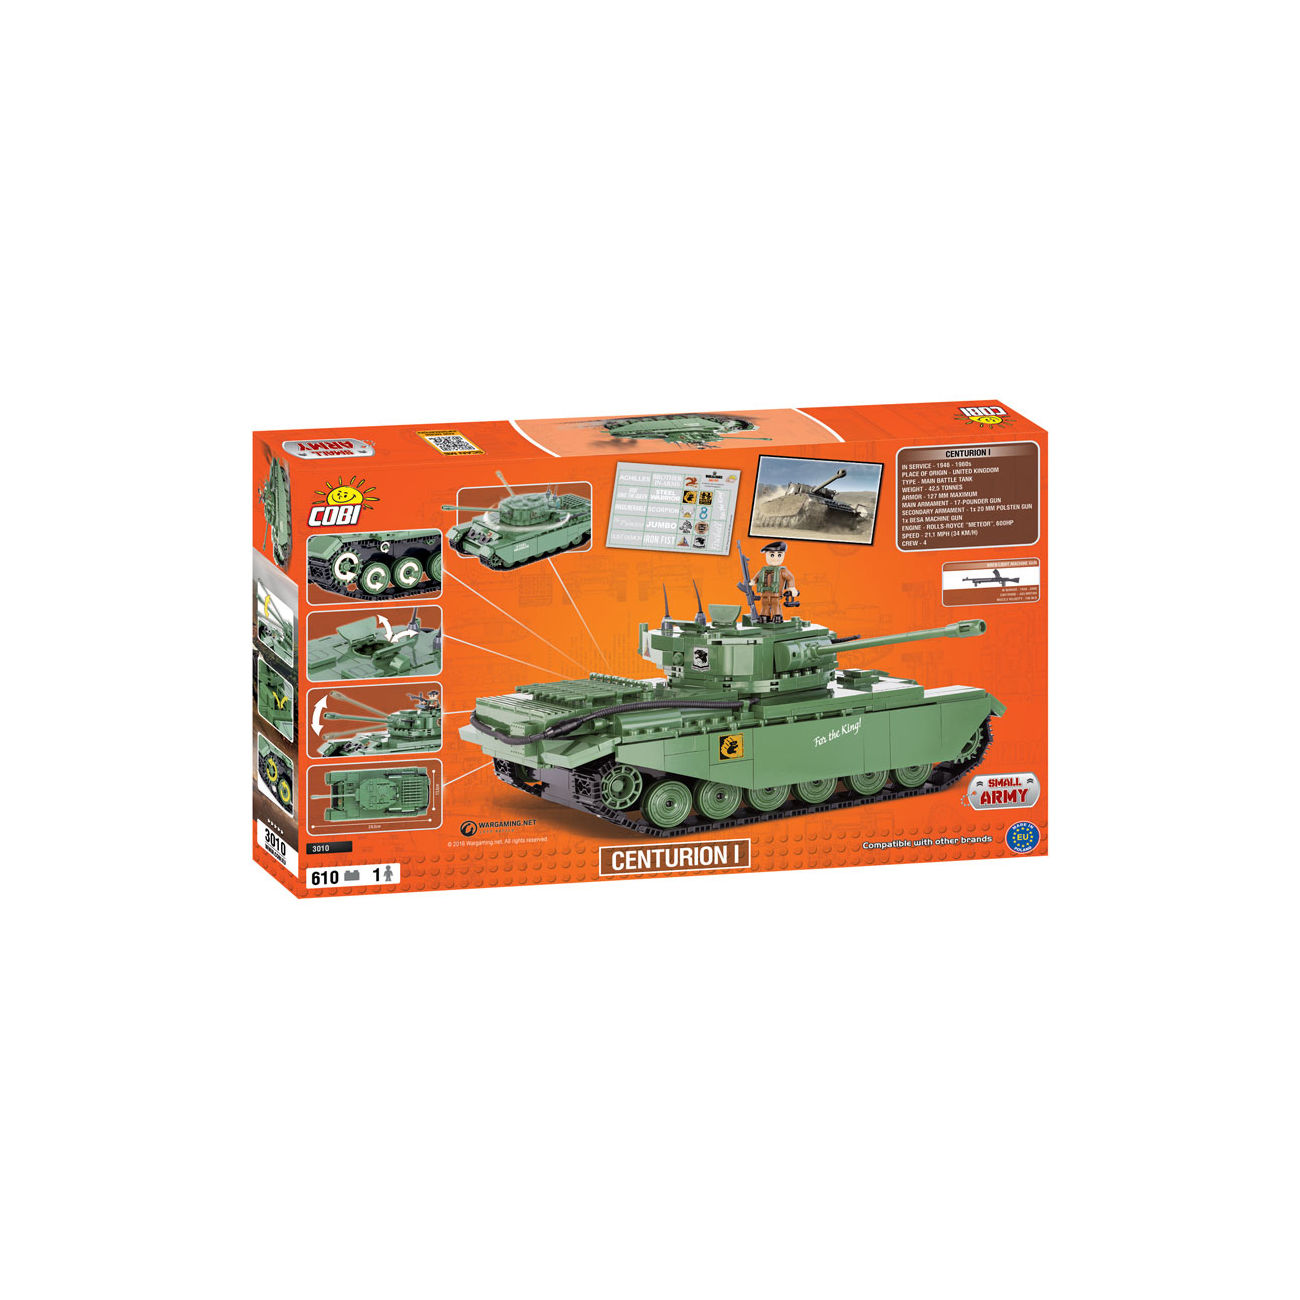 Cobi World Of Tanks Roll Out Small Army Bausatz Panzer Centurion I 610 Teile 3010 3